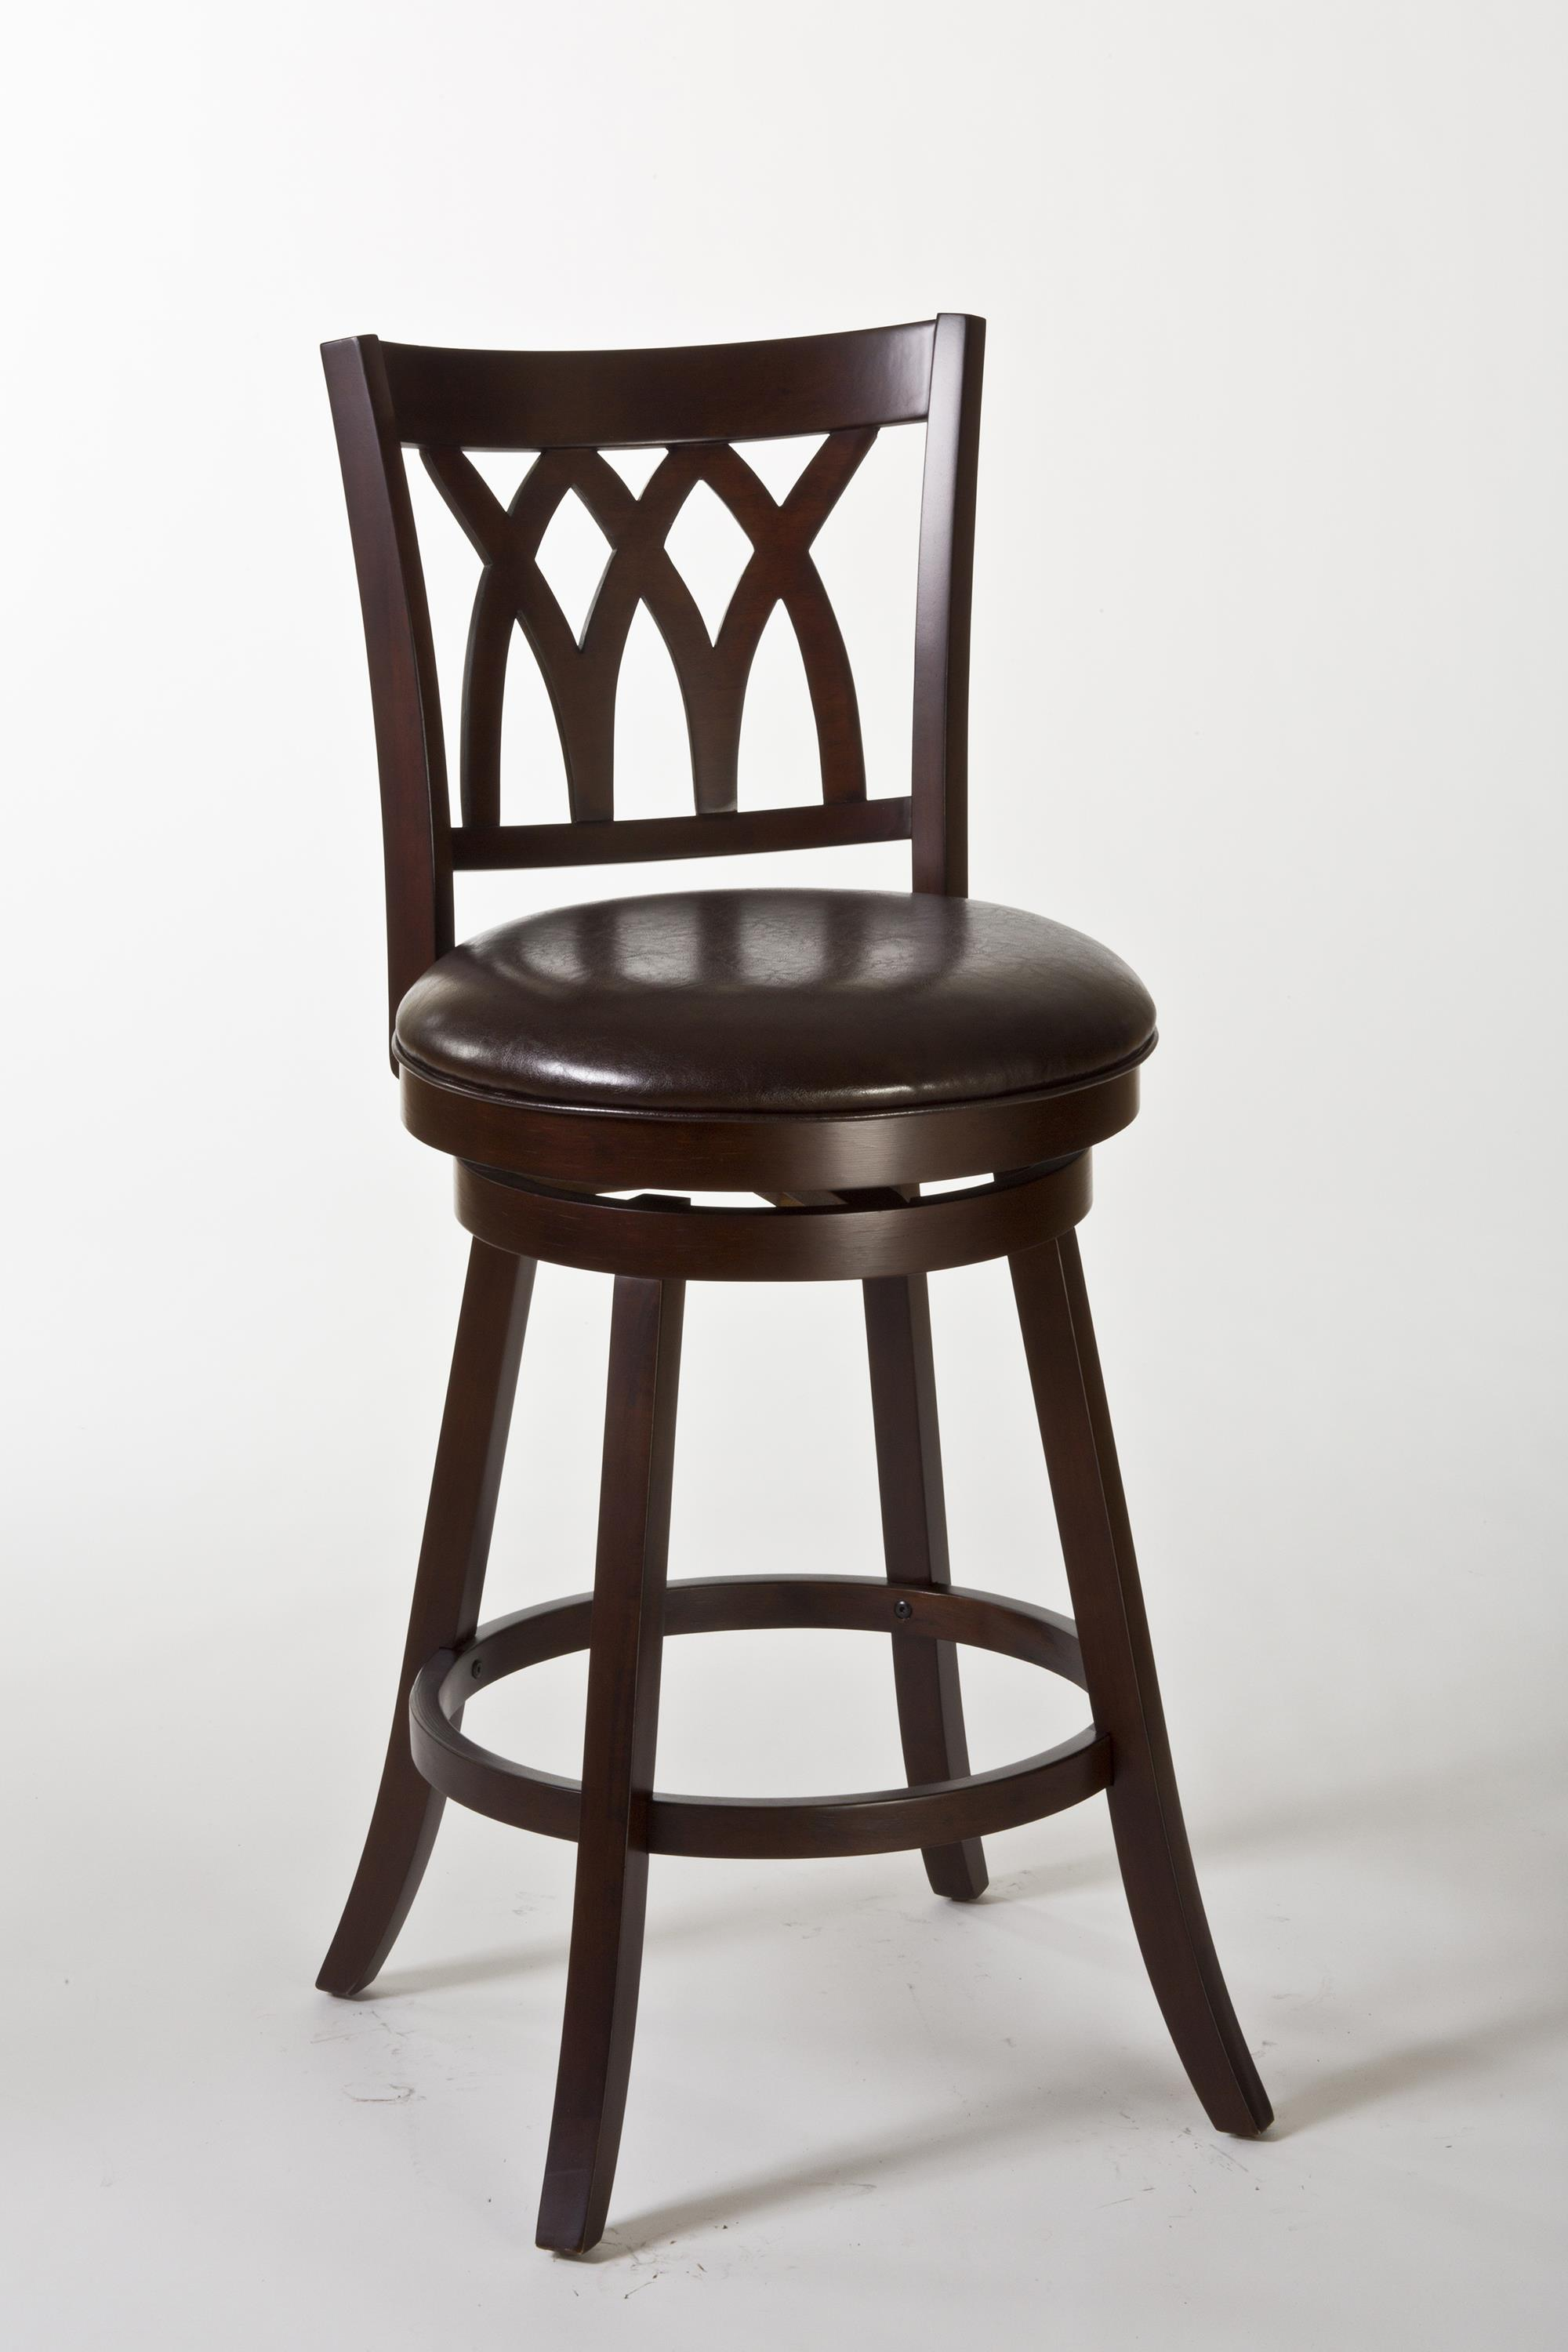 Tateswood Swivel Counter Stool With Designed Back By